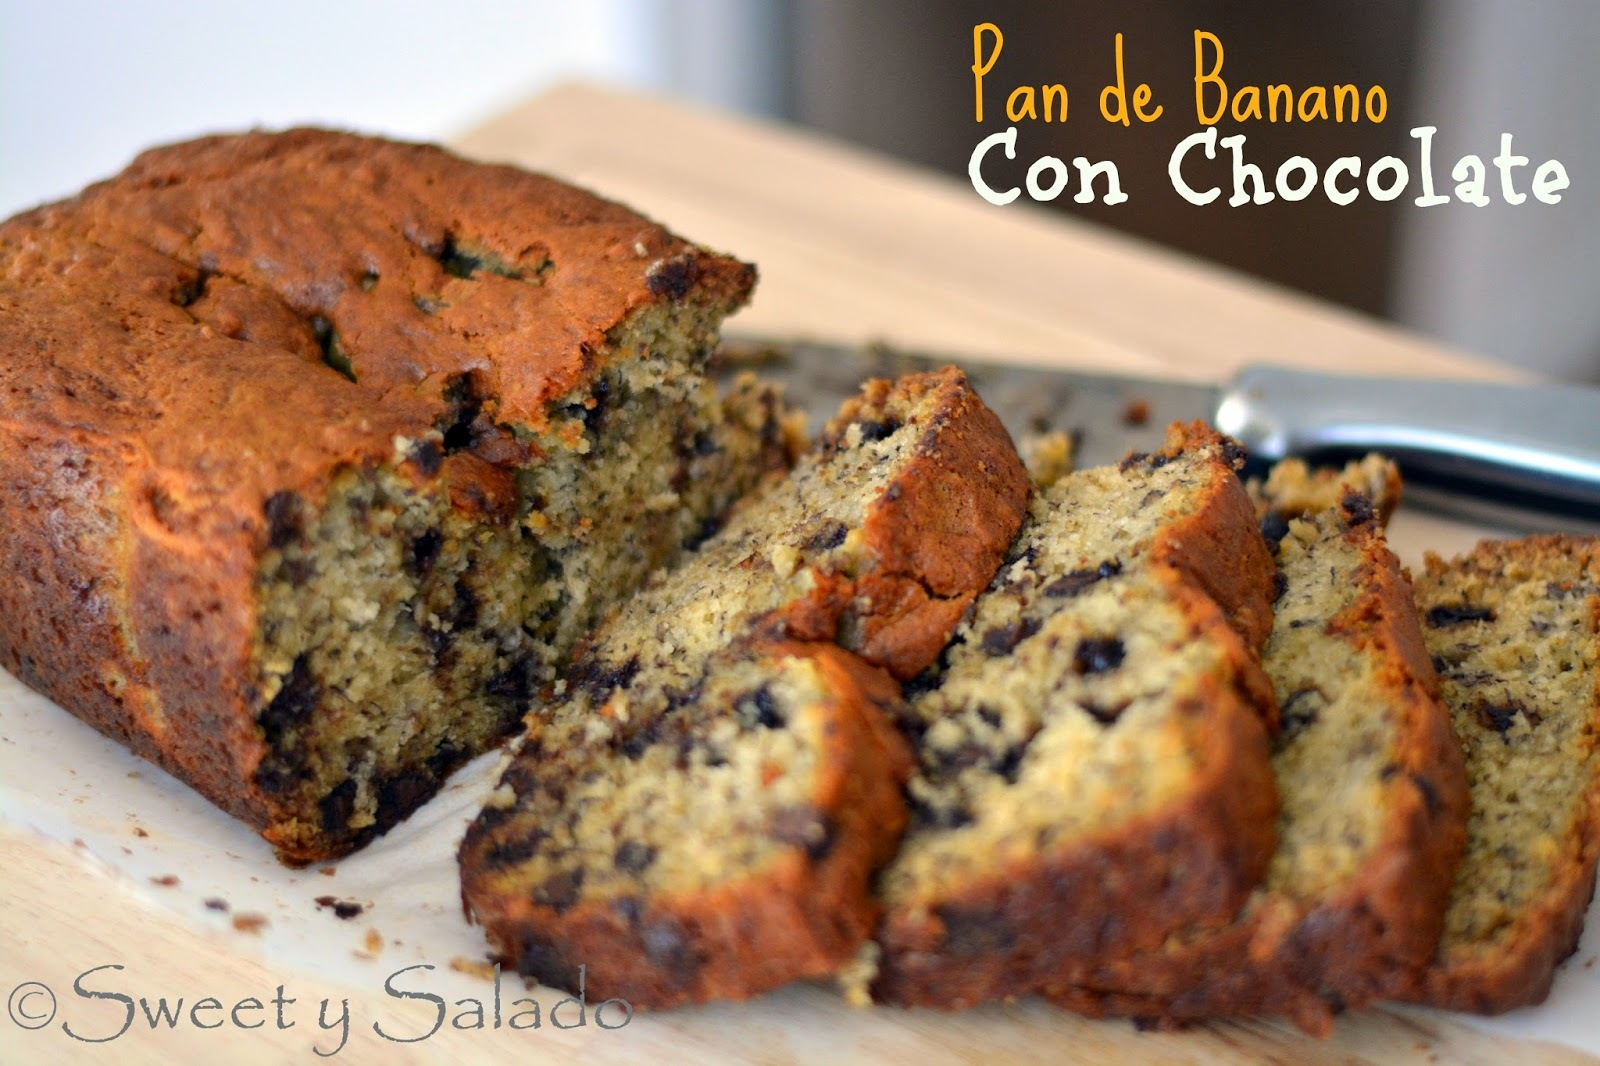 Pan de Banano Con Chocolate